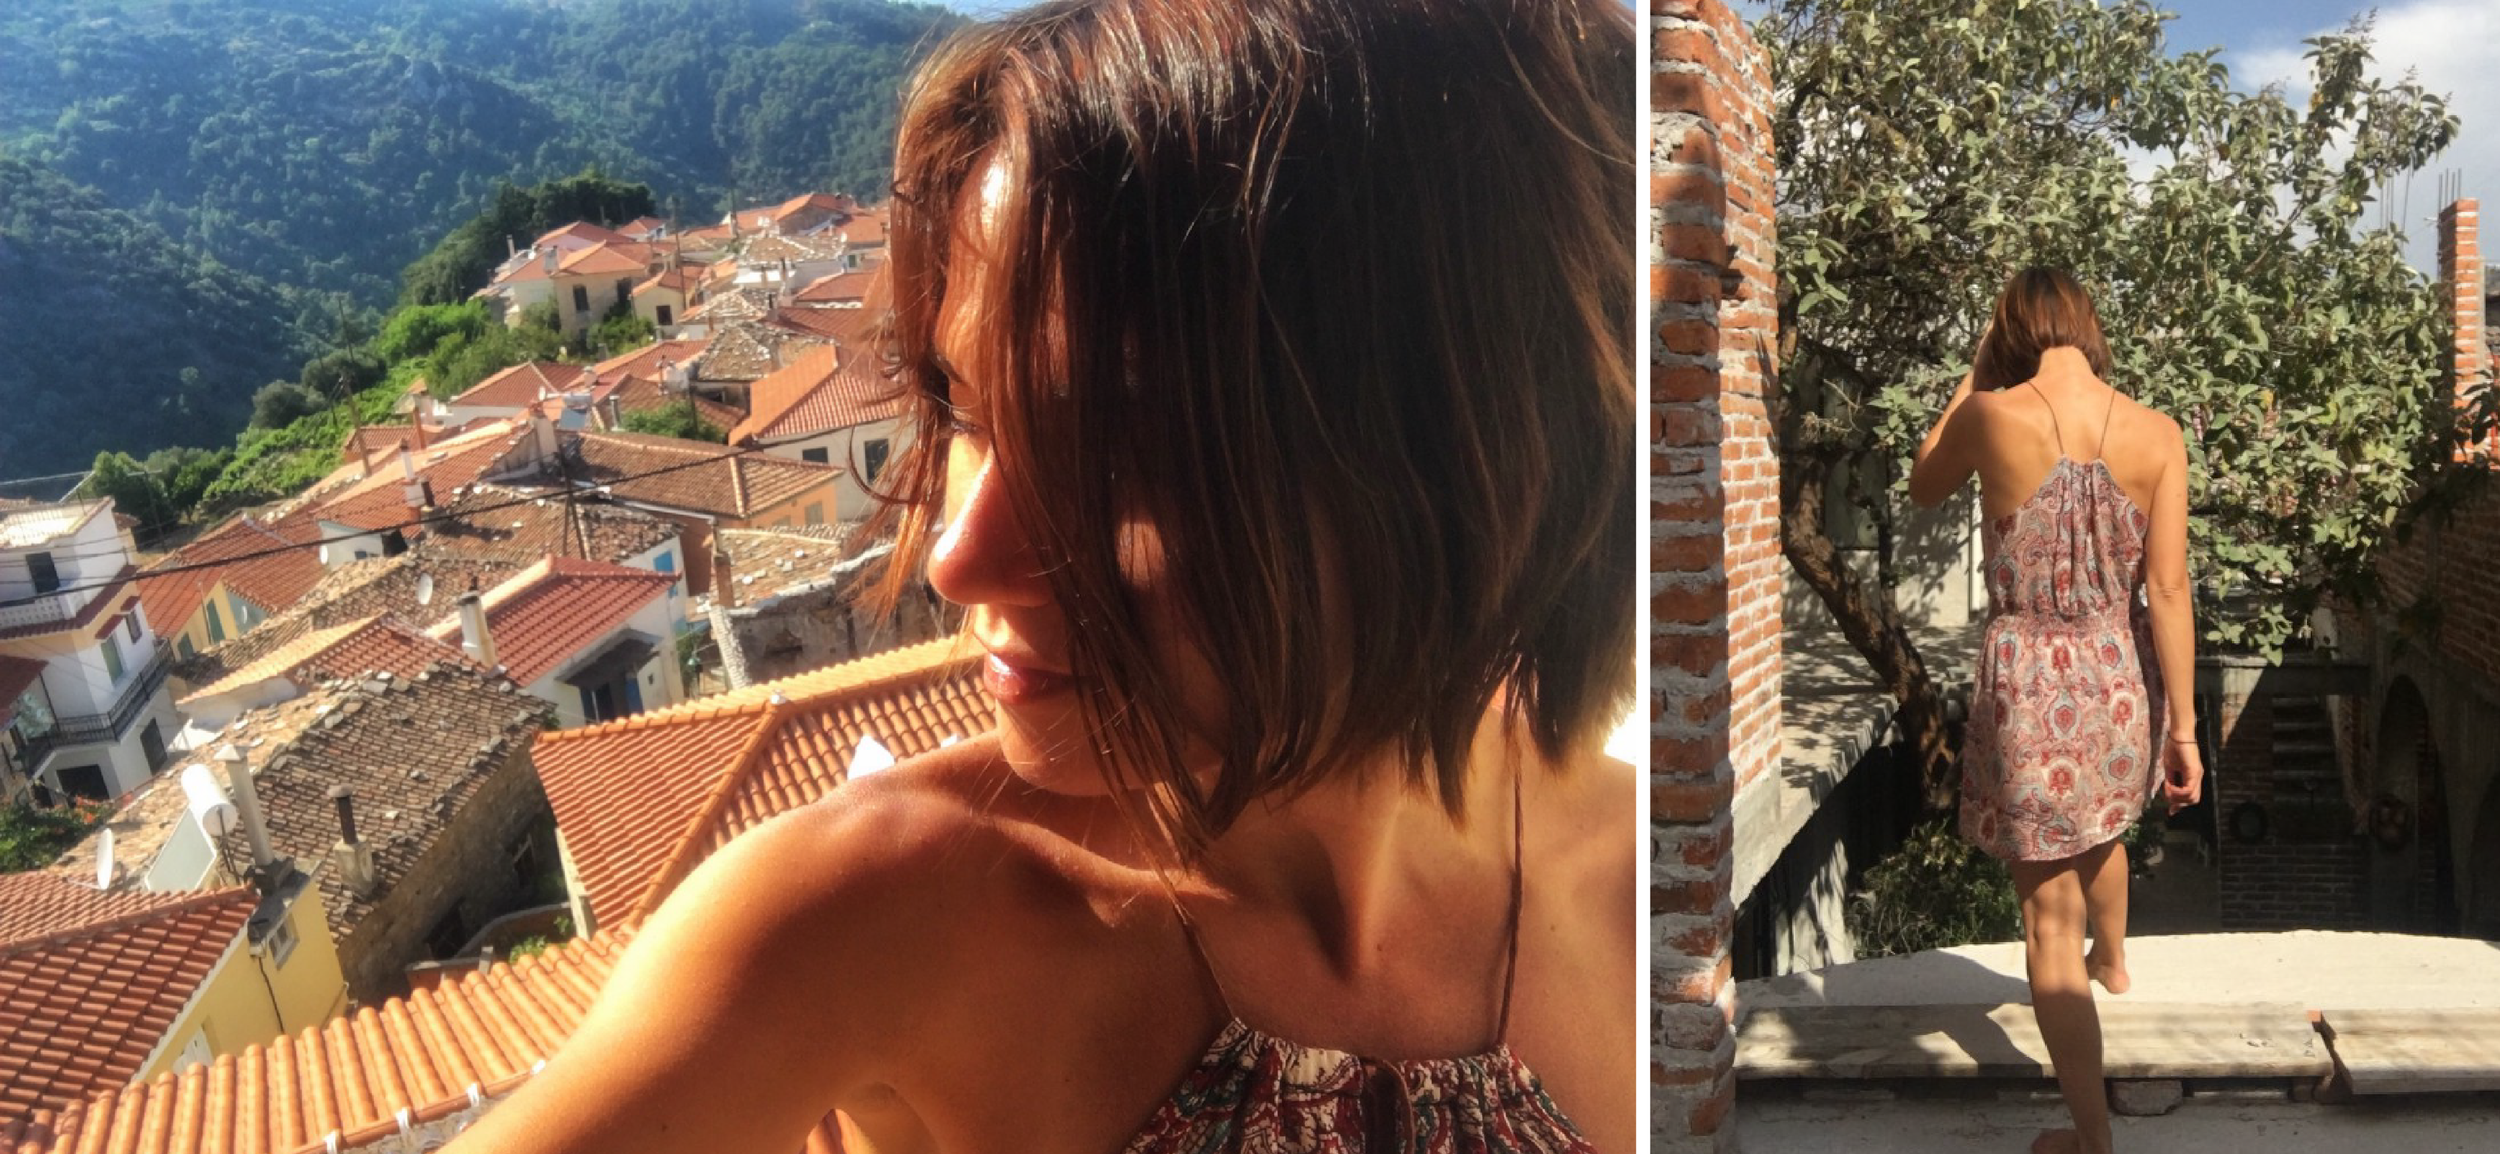 A patterned dress that I bought in Bangkok for $100 Baht ($3 USD), rocked in a village in Greece (left) and again in San Miguel de Allende, Mexico (right)